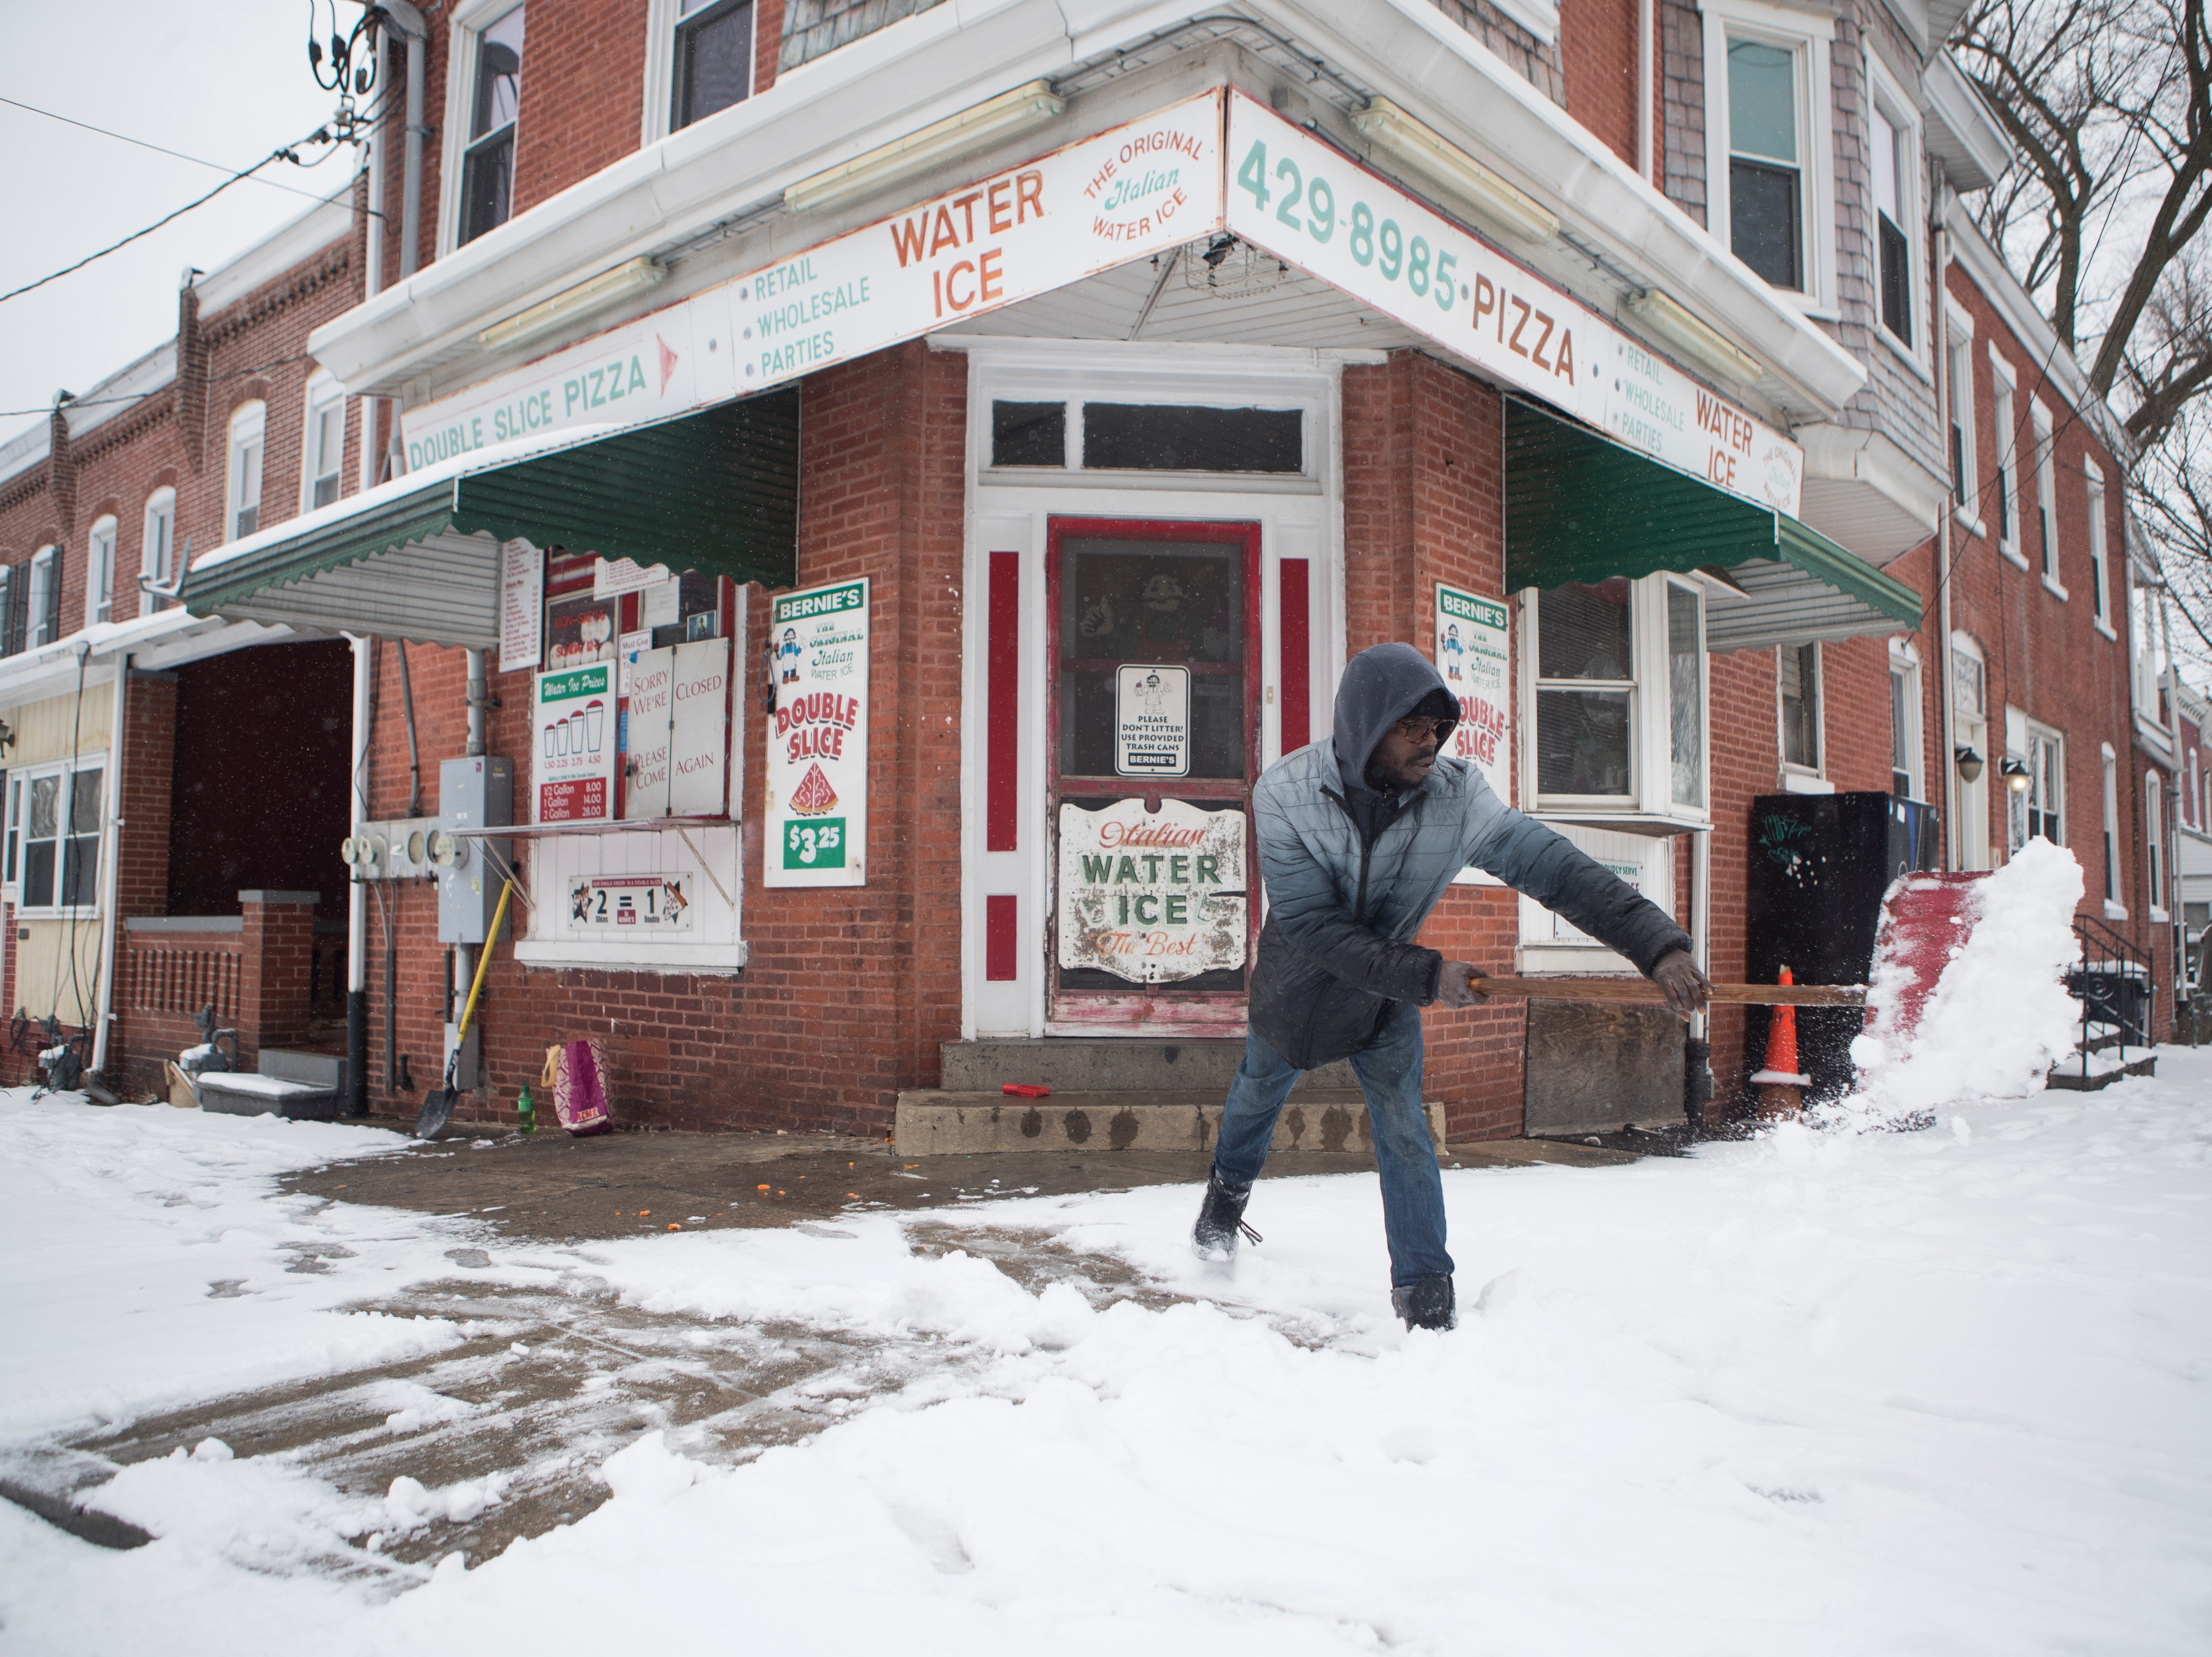 Snow day: Sights and sounds from Wednesday's storm